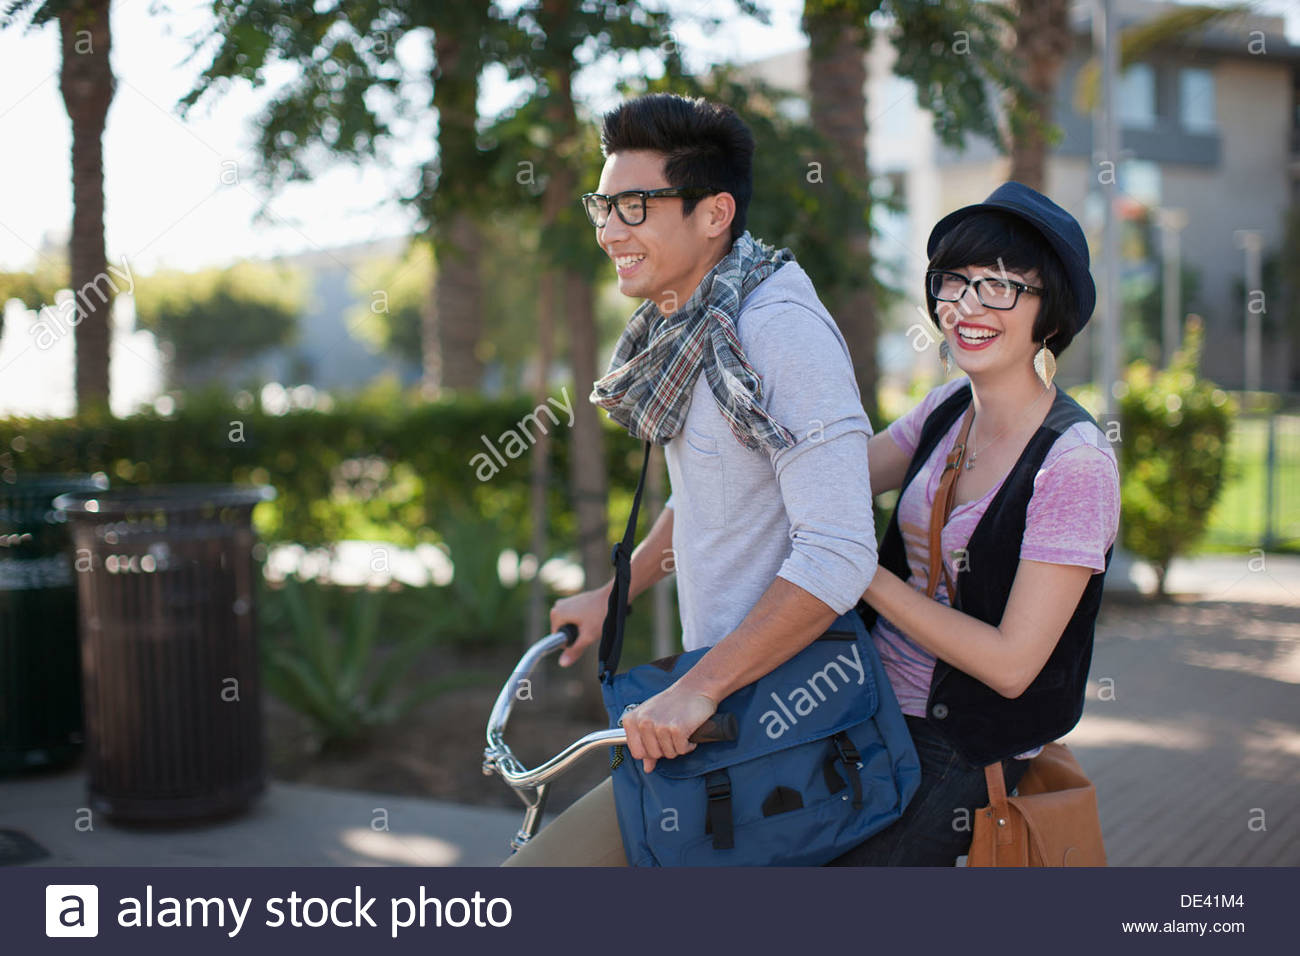 Two students on bicycle - Stock Image